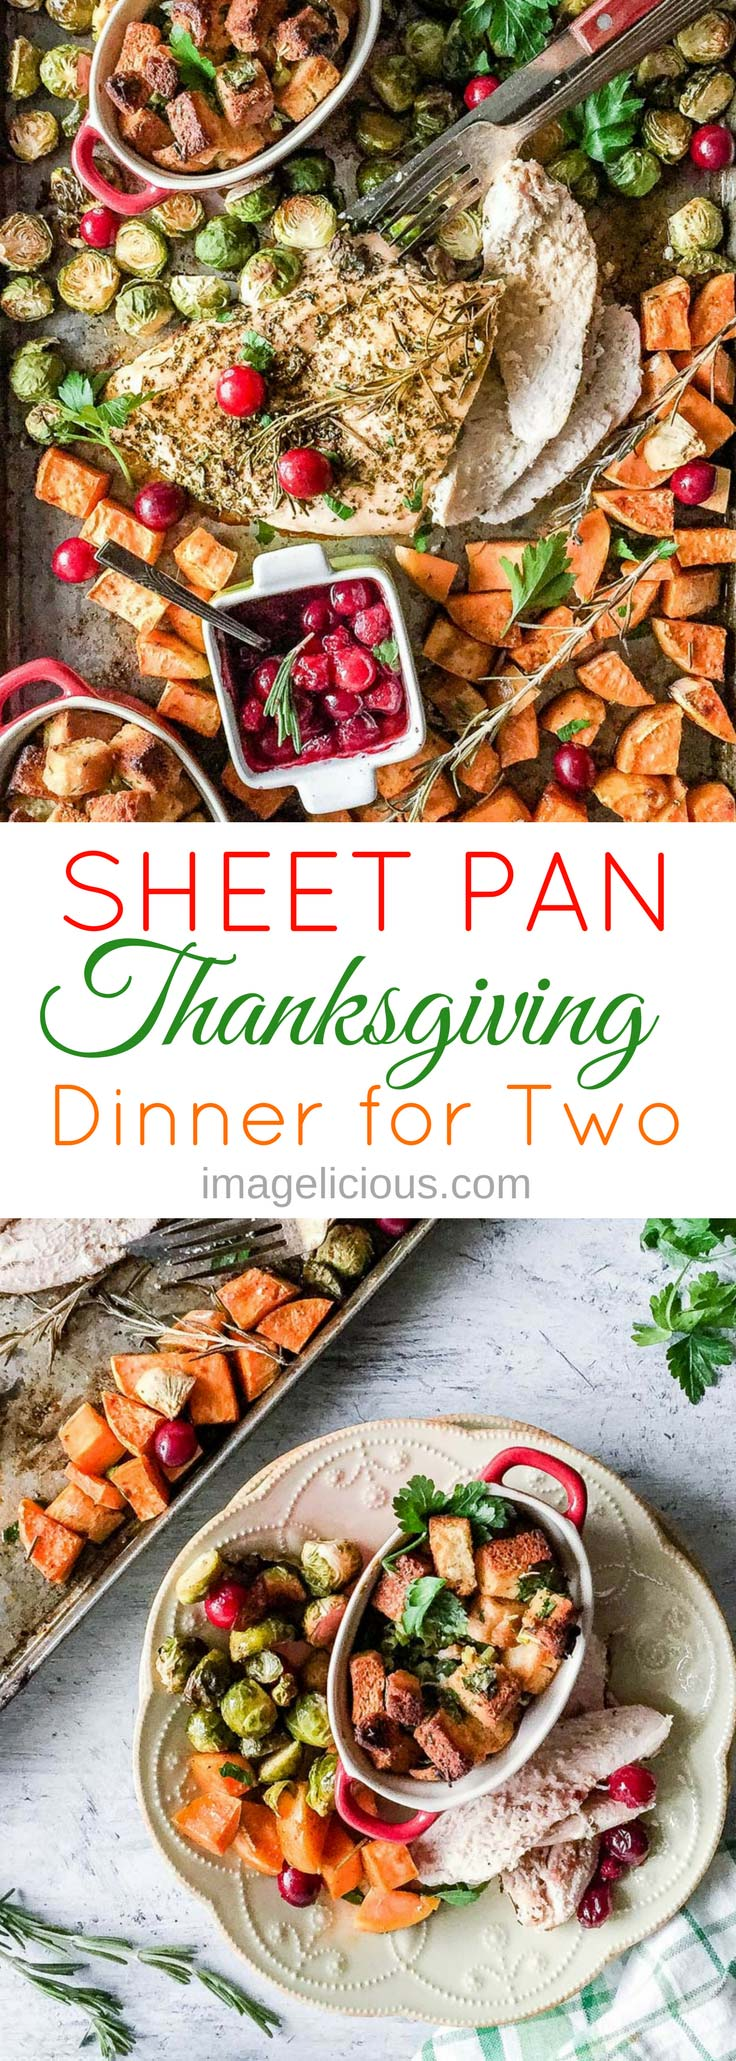 This Sheet Pan Thanksgiving Dinner for Two is done in just one hour from start to finish. It has juicy turkey breast, stuffing, homemade cranberry sauce, and delicious roasted vegetables. Easy, fast, and delicious | Imagelicious #thanksgiving #thanksgivingdinner #sheetpan #sheetpandinner #cranberrysauce #turkeybreast #dinnerfortwo #onehour #Imagelicious